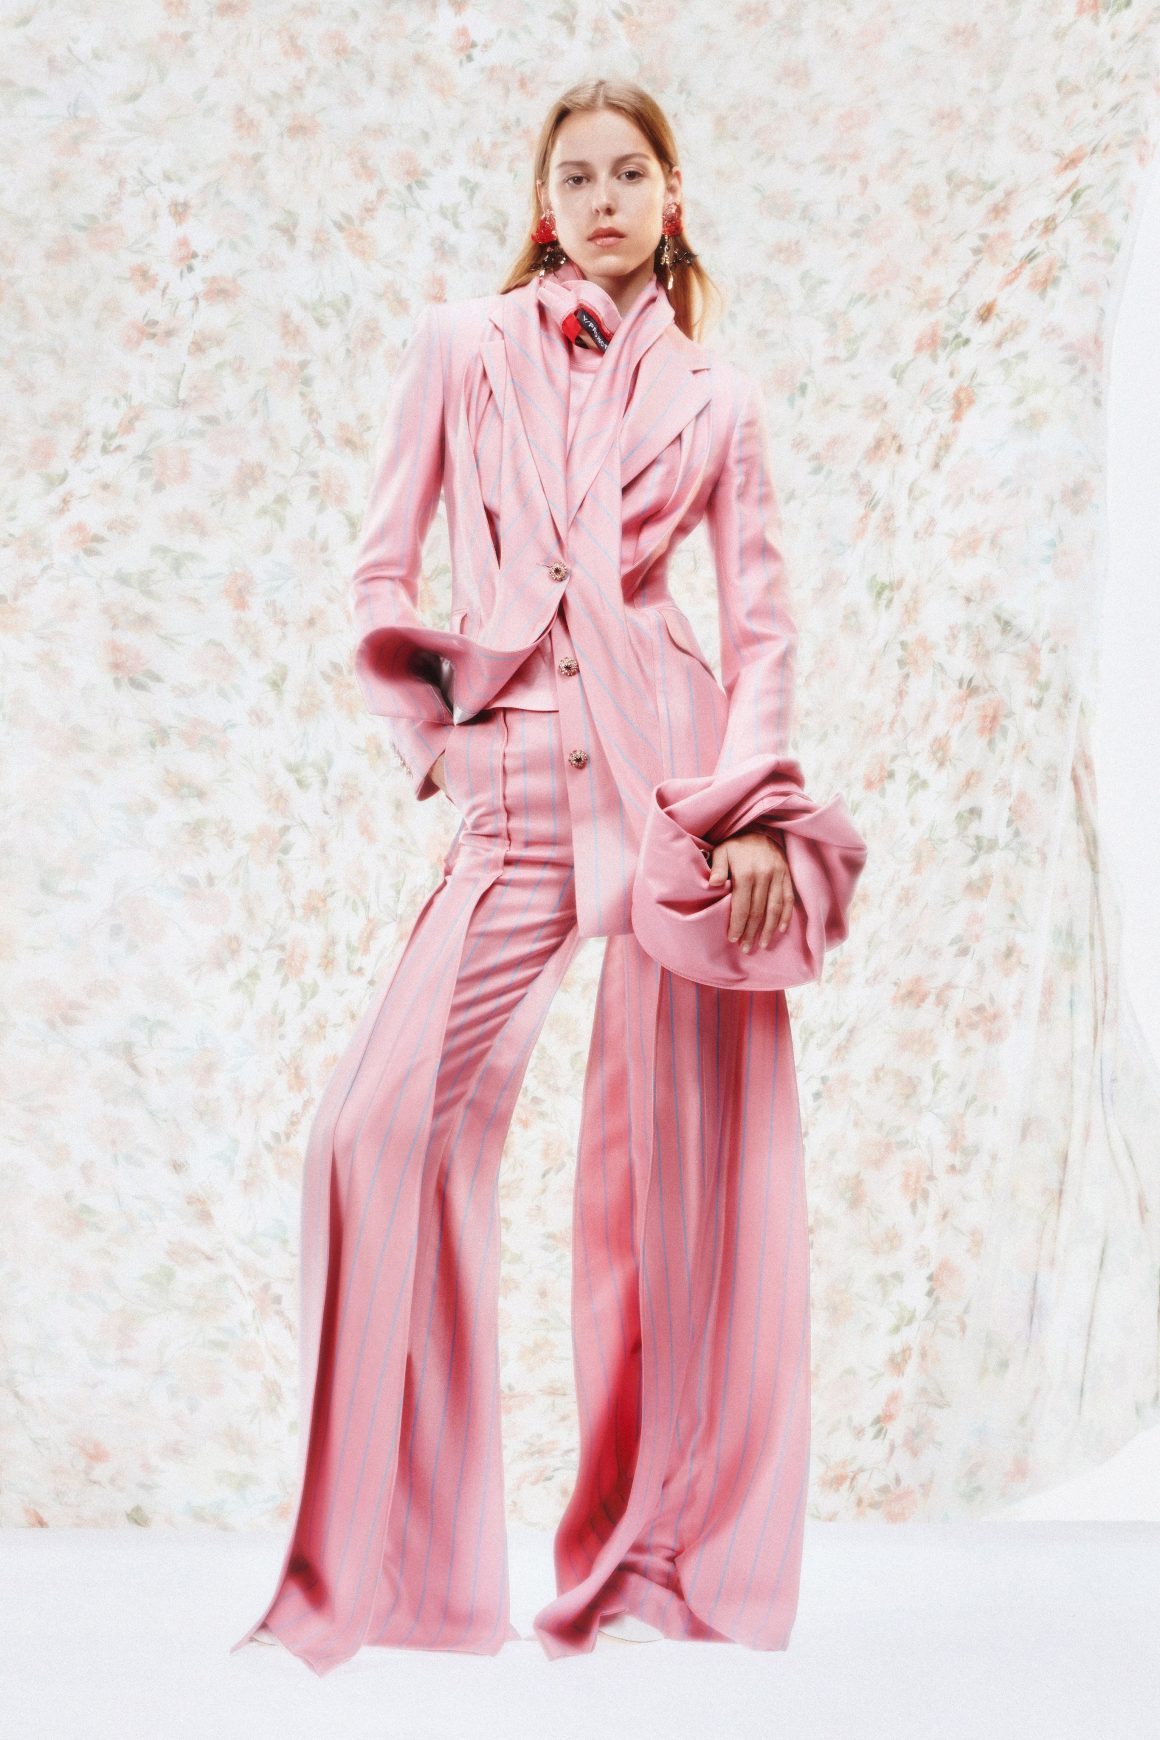 Chez Y/Project on ose le total look rose